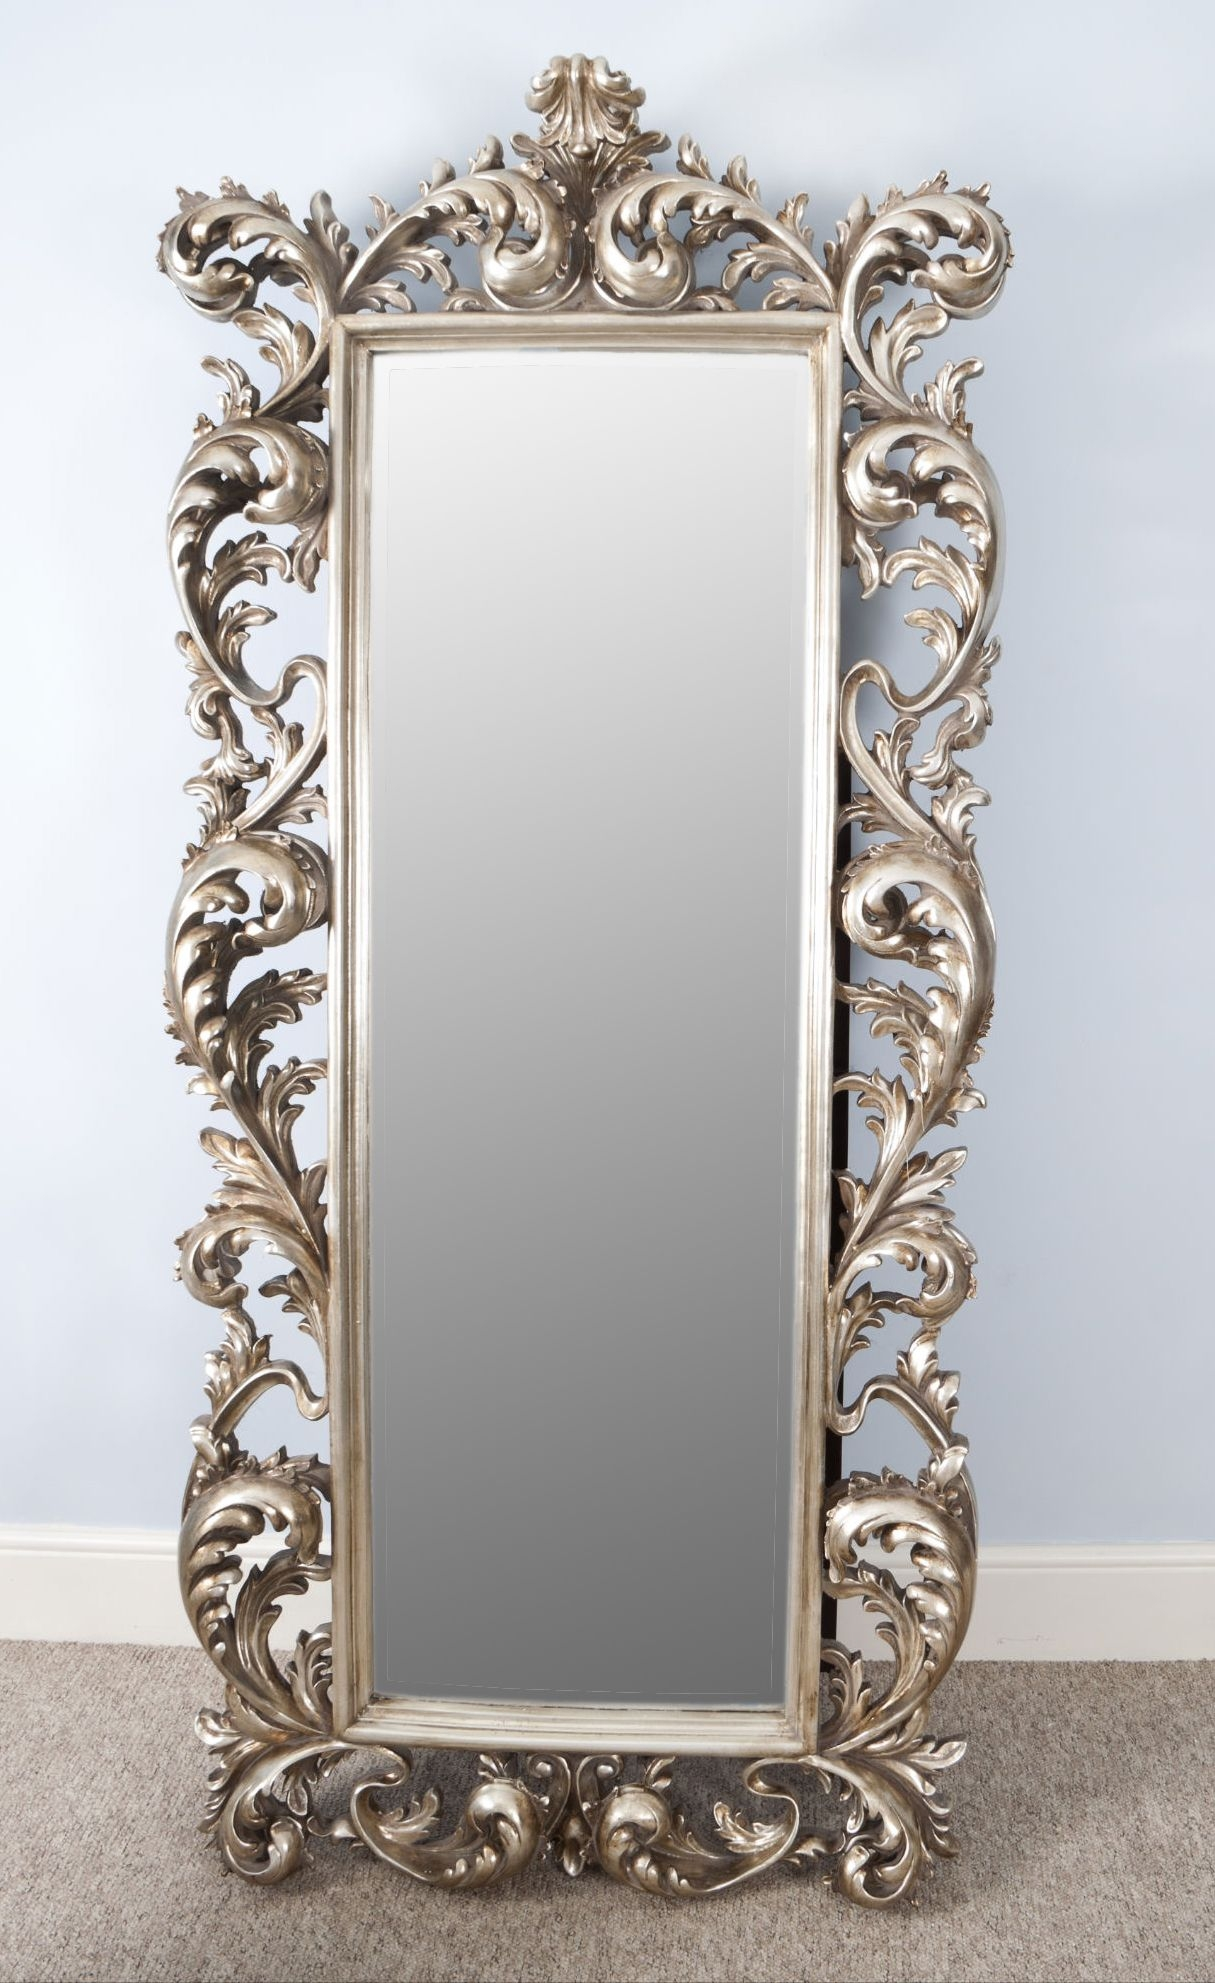 Classic Impression On Antique Wall Mirrors Vwho With Full Length Antique Mirror (Image 8 of 15)